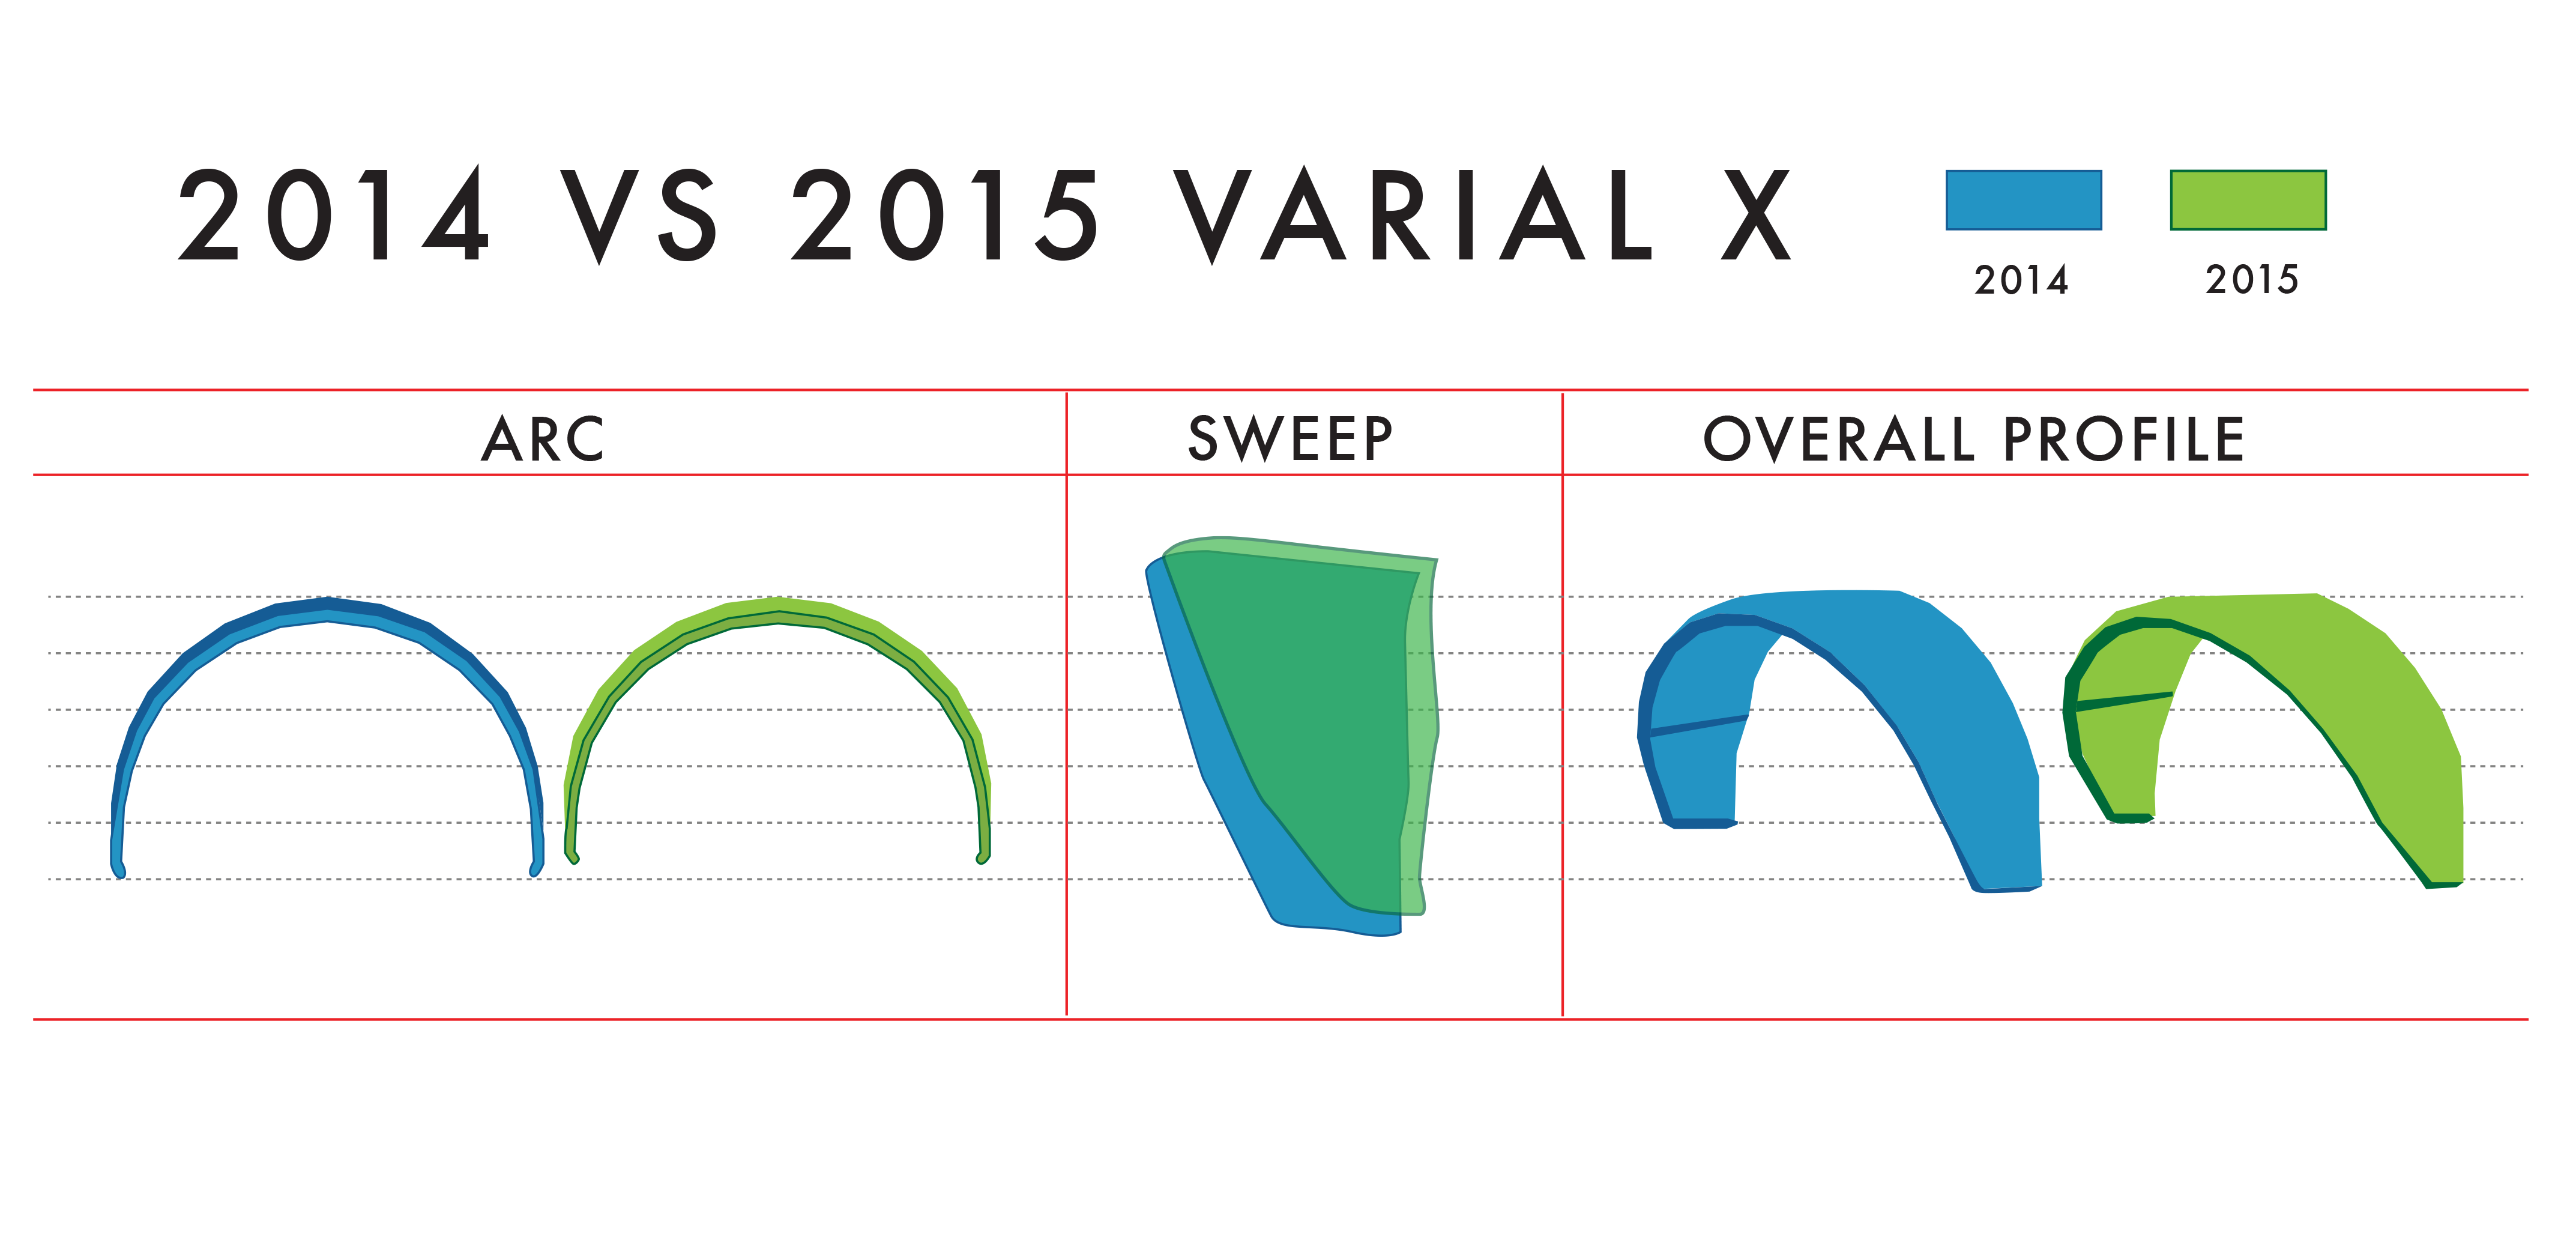 THE VARIAL X – 2015 VS 2014 1